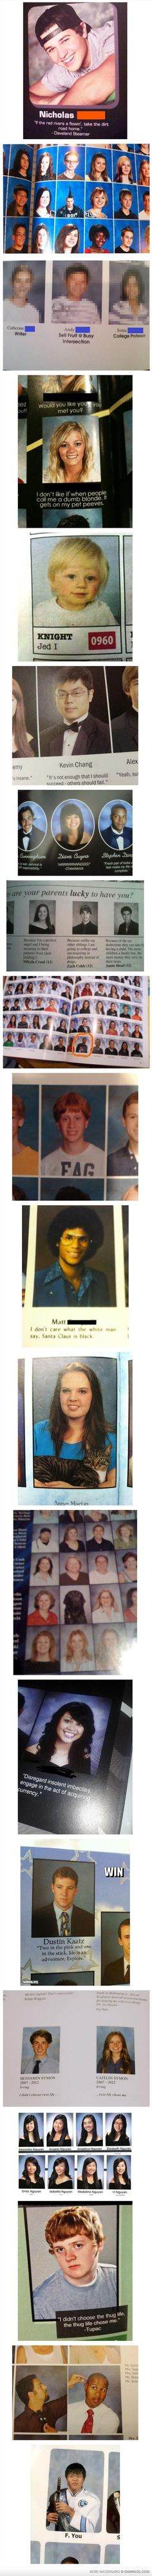 Yearbook wins and fails!: